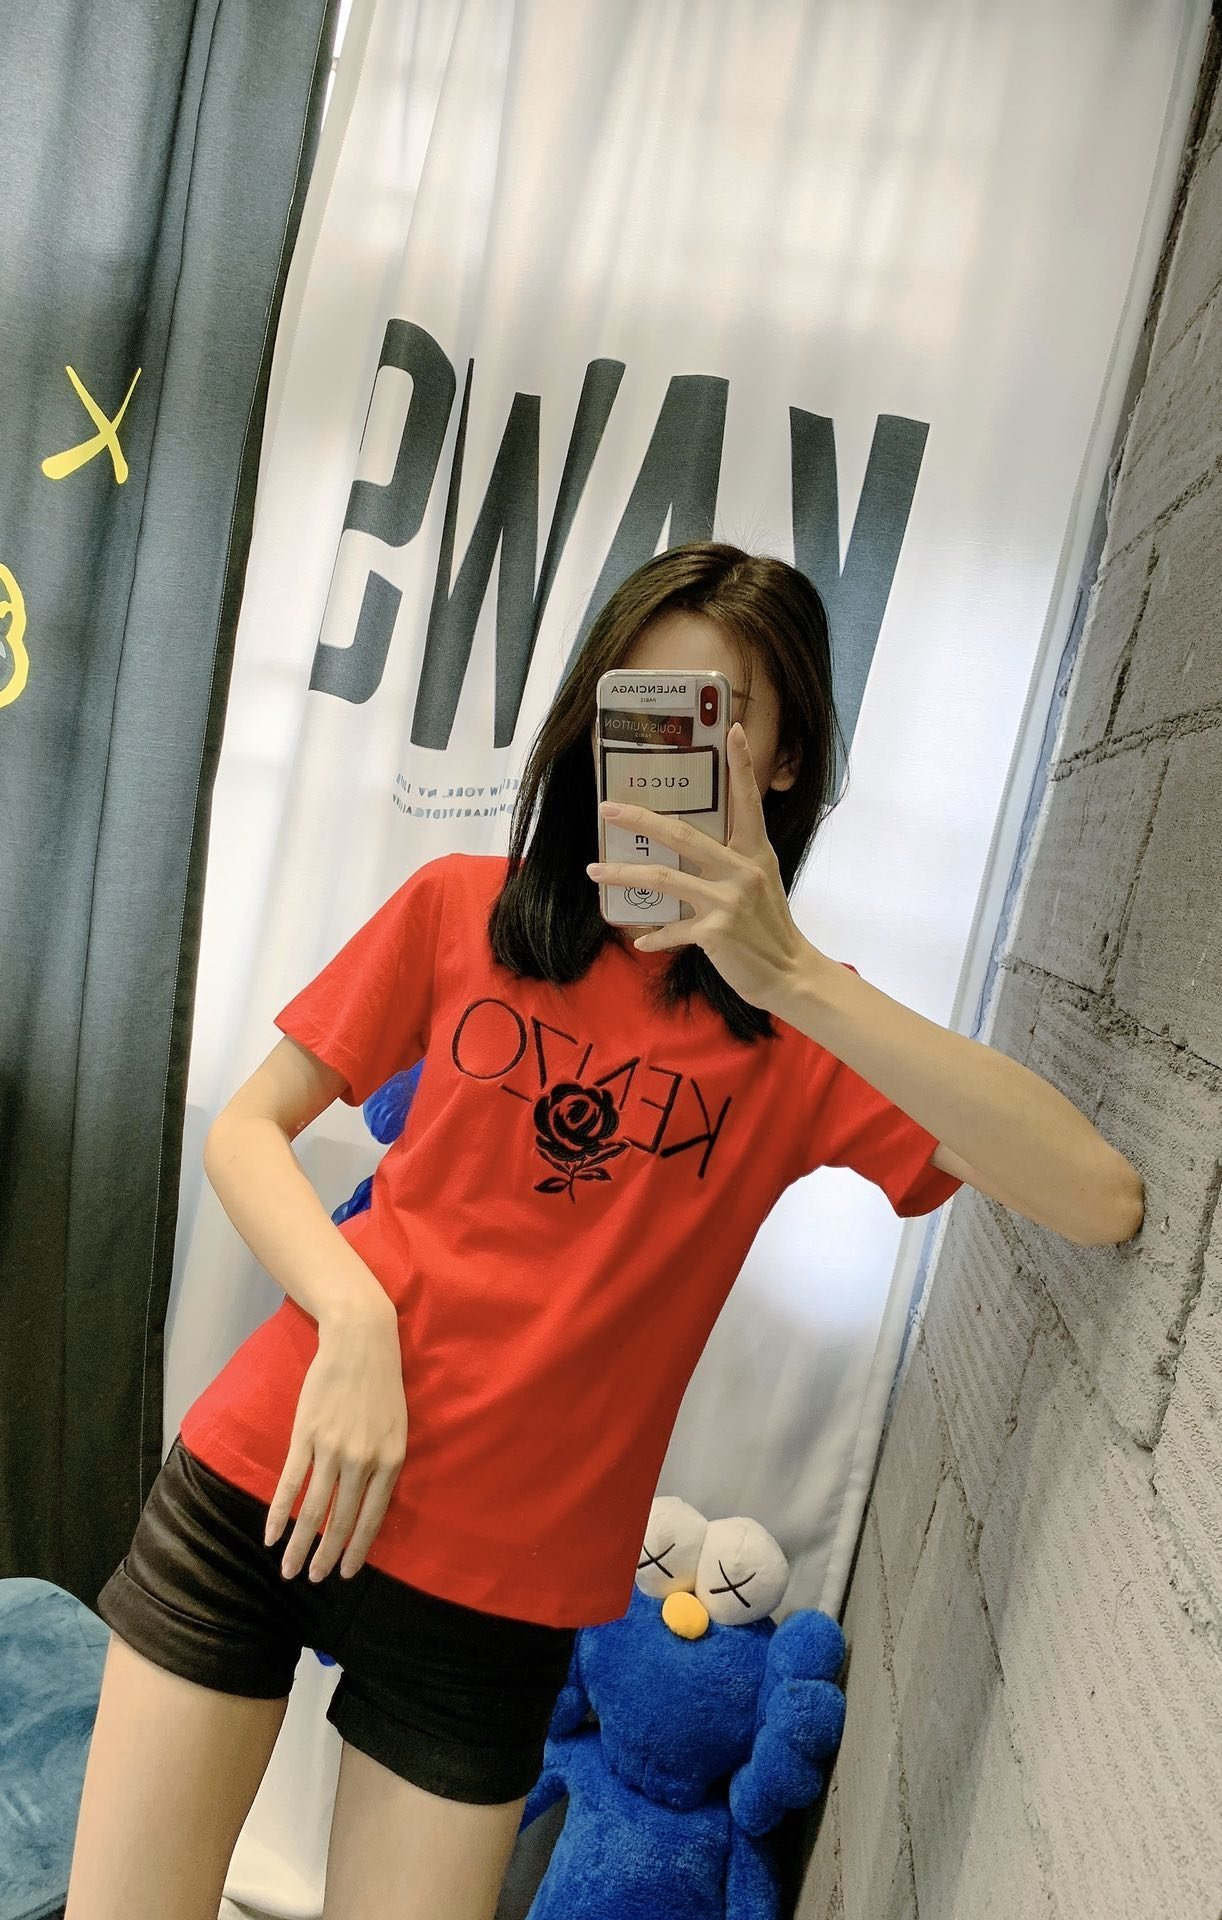 2020 high-quality ladies short-sleeved casual T-shirts and fashionable new tops in spring and summer HROFED1O